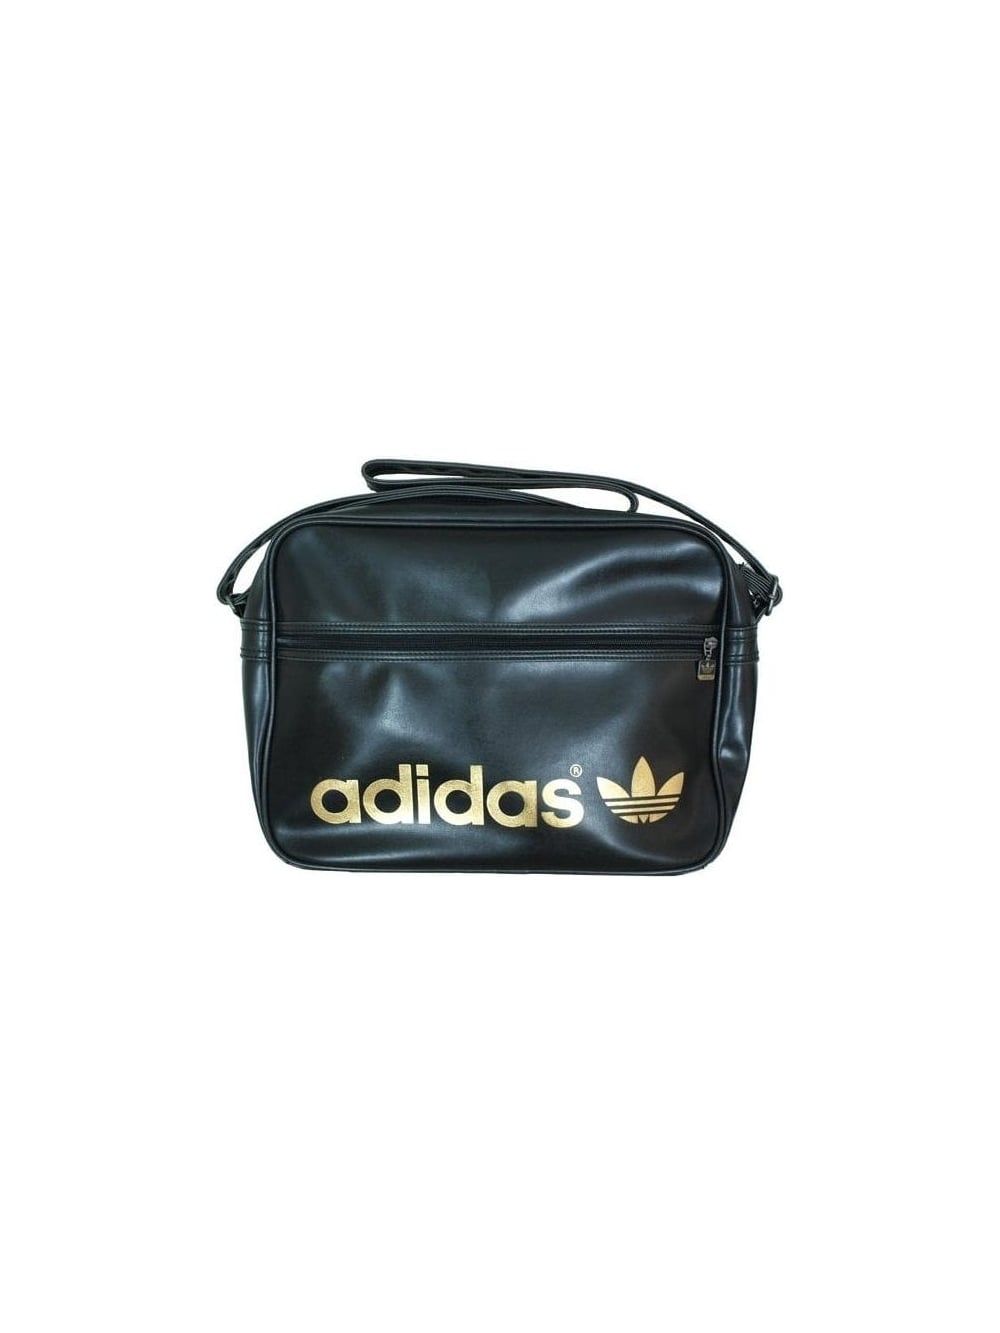 Mens adidas Originals Airline Bag - Black Gold  e00cf26611d66